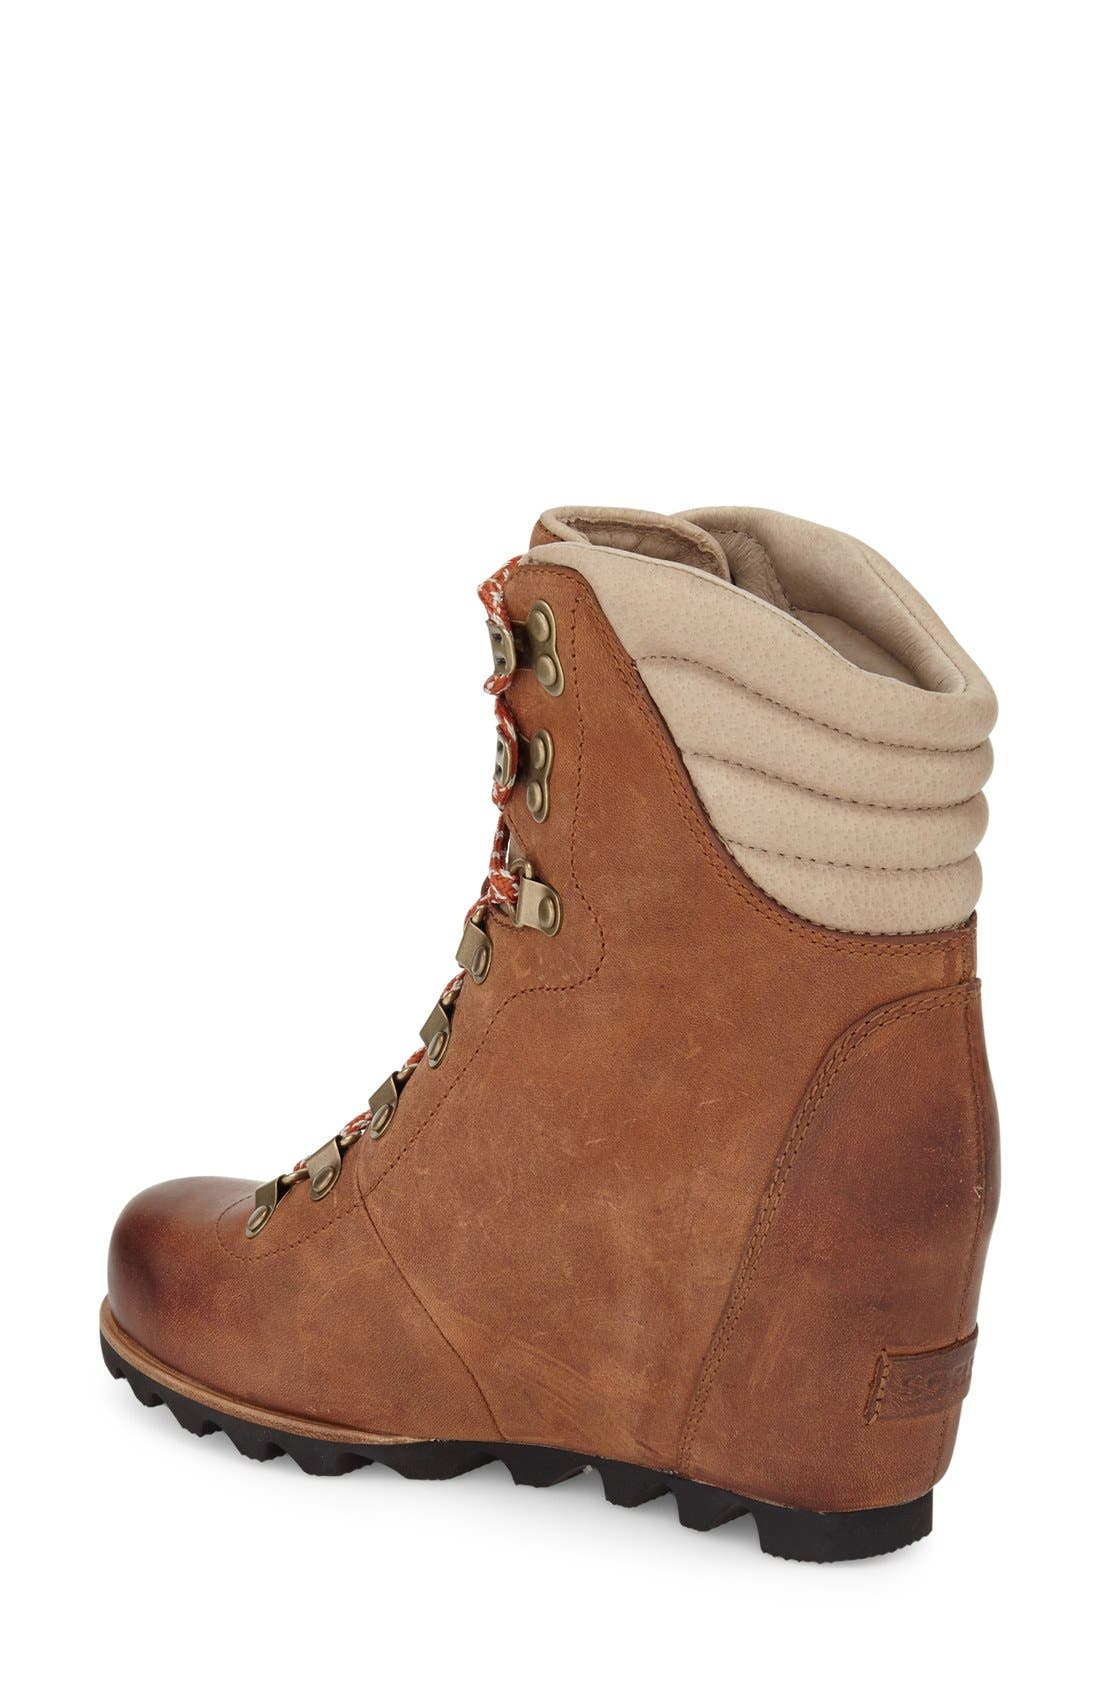 'Conquest' Waterproof Wedge Boot,                             Alternate thumbnail 24, color,